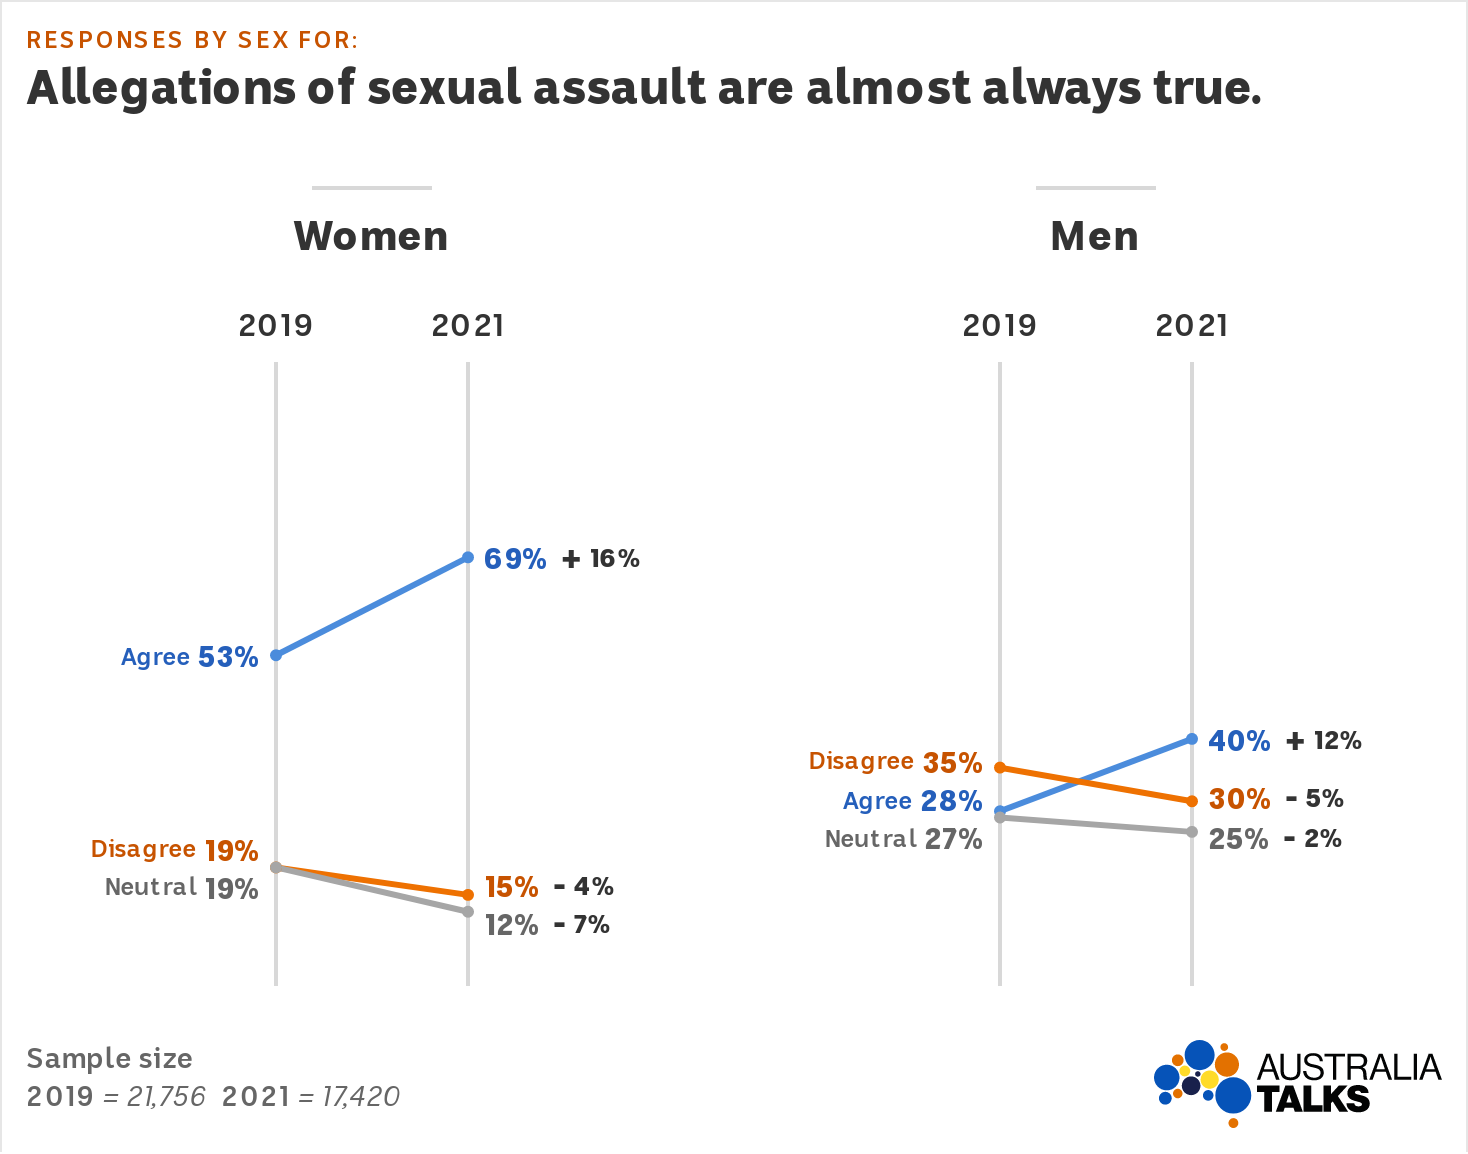 Graph shows agreement with the statement increasing to 69% for women and 40% for men.